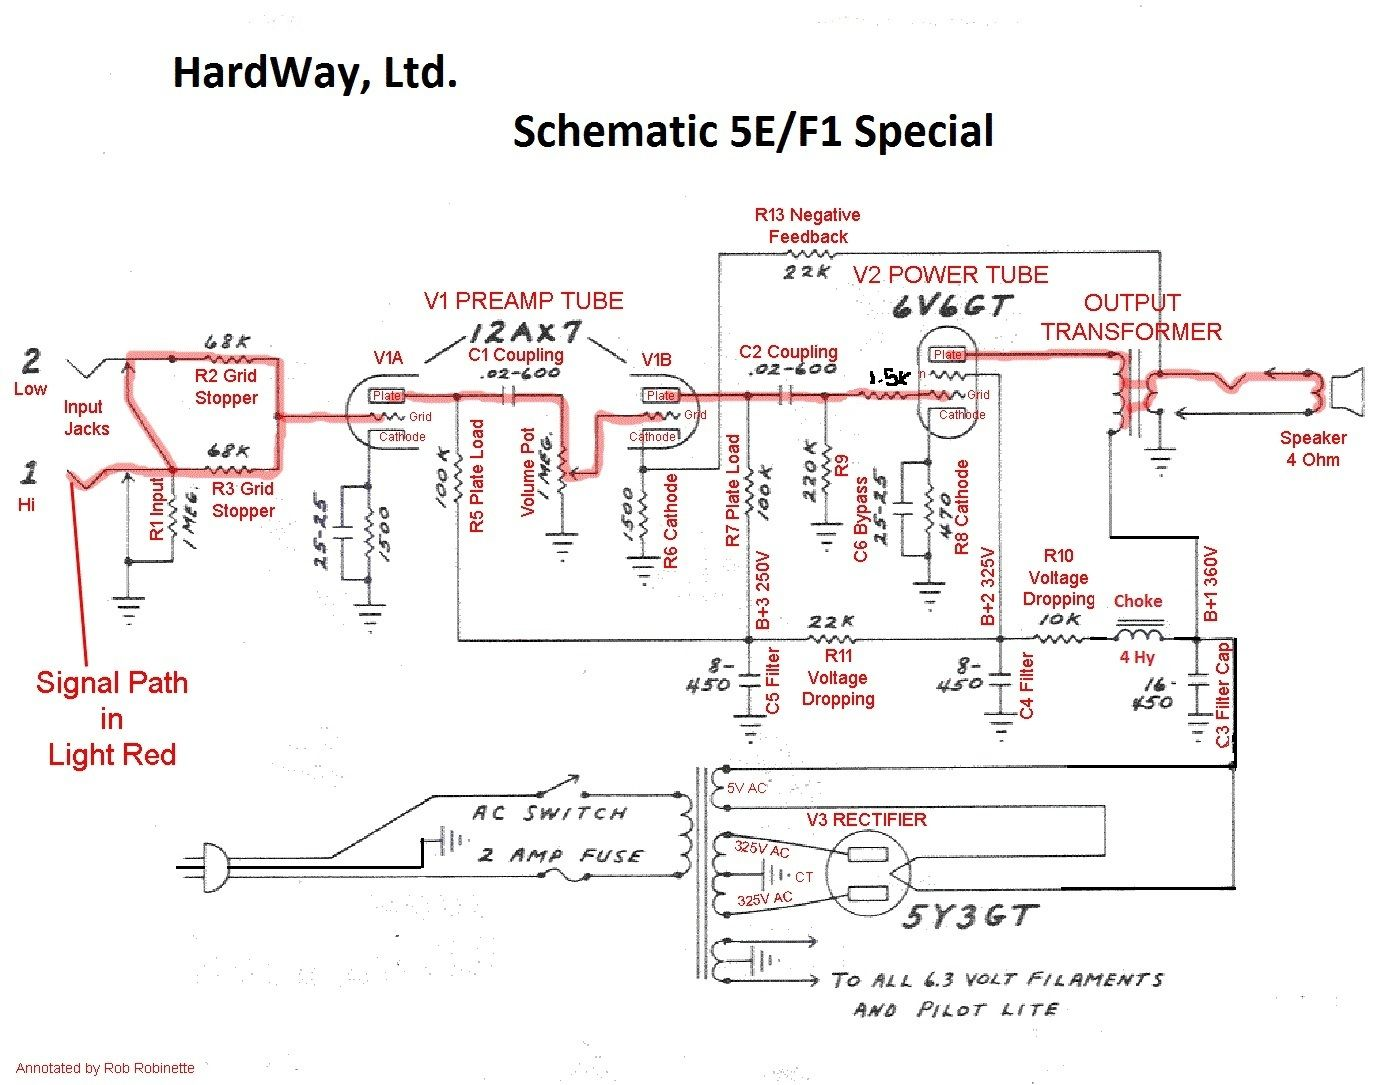 medium resolution of this is the schematic for the 5e f1 special amp